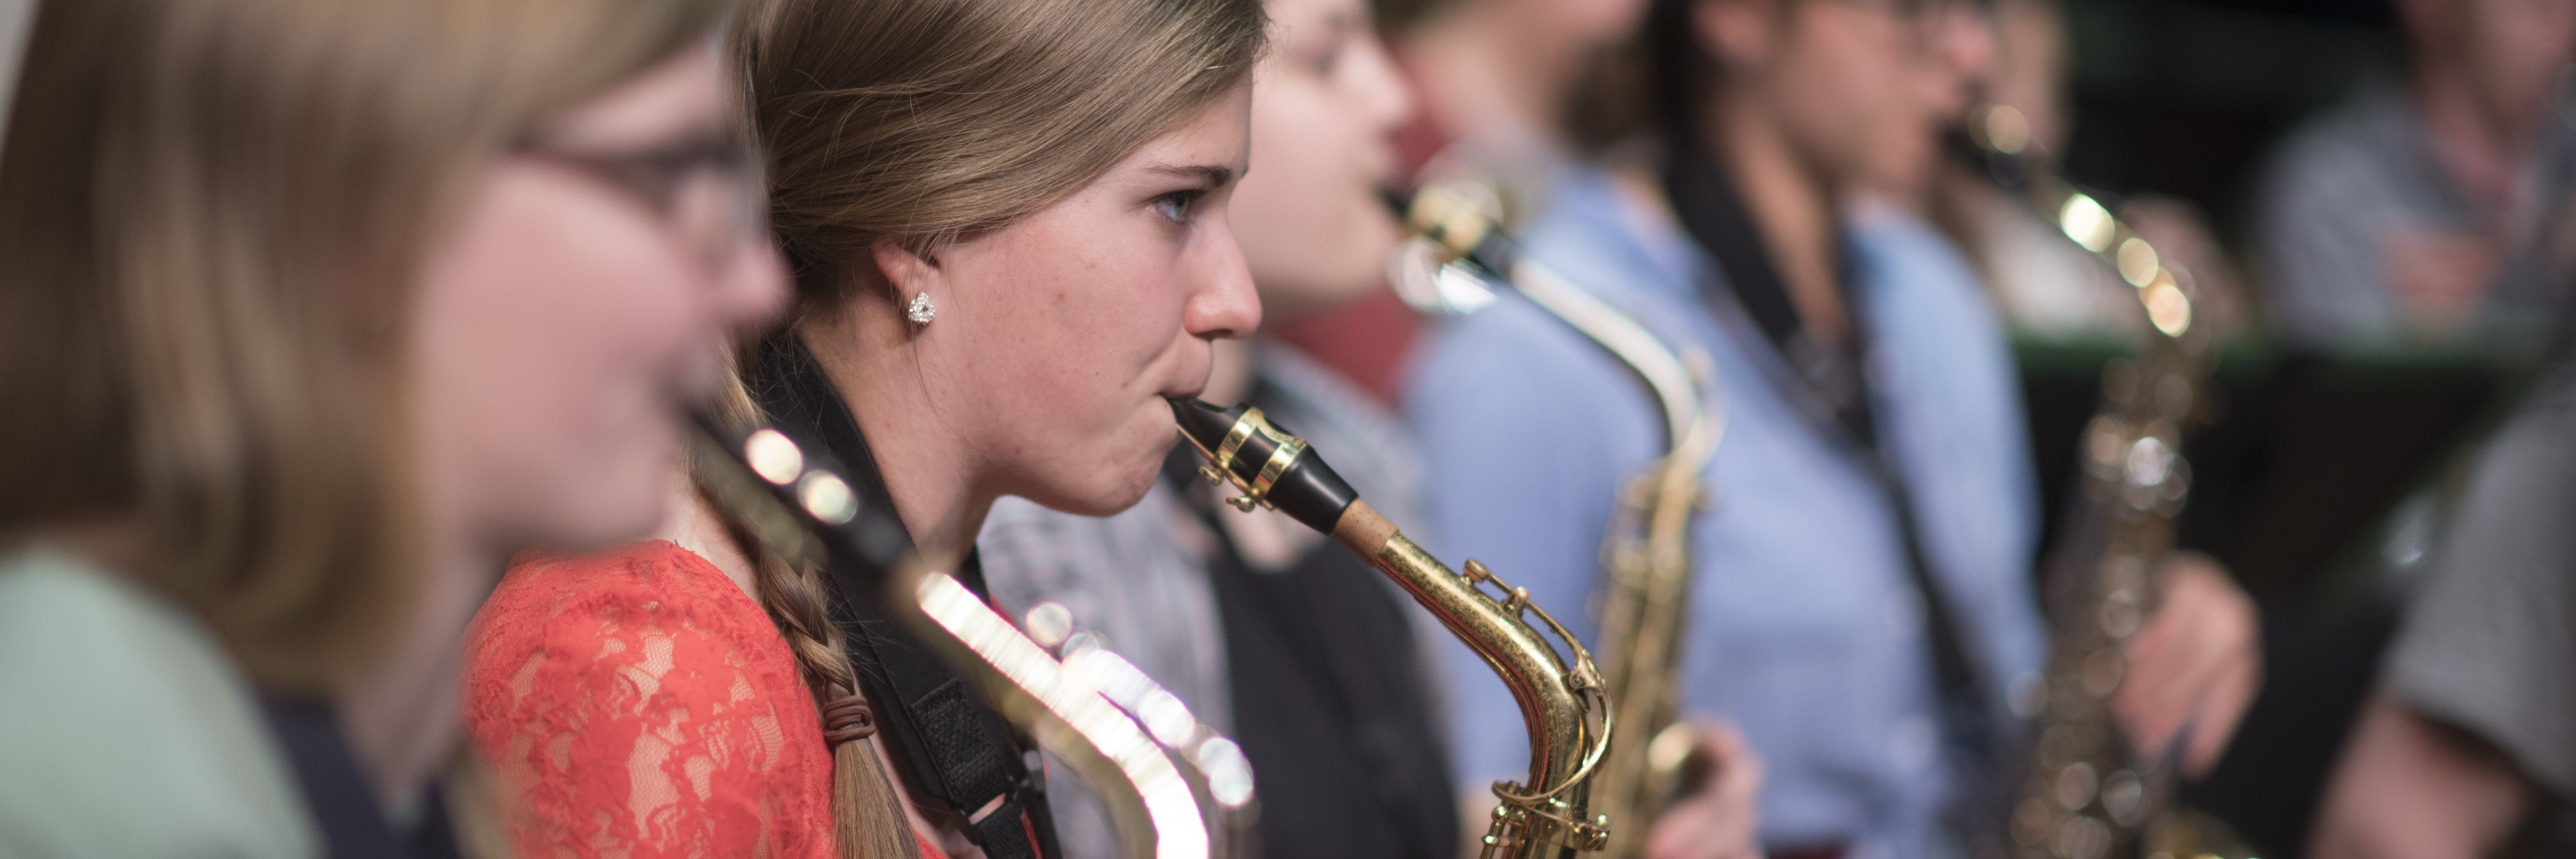 Students playing the saxophone